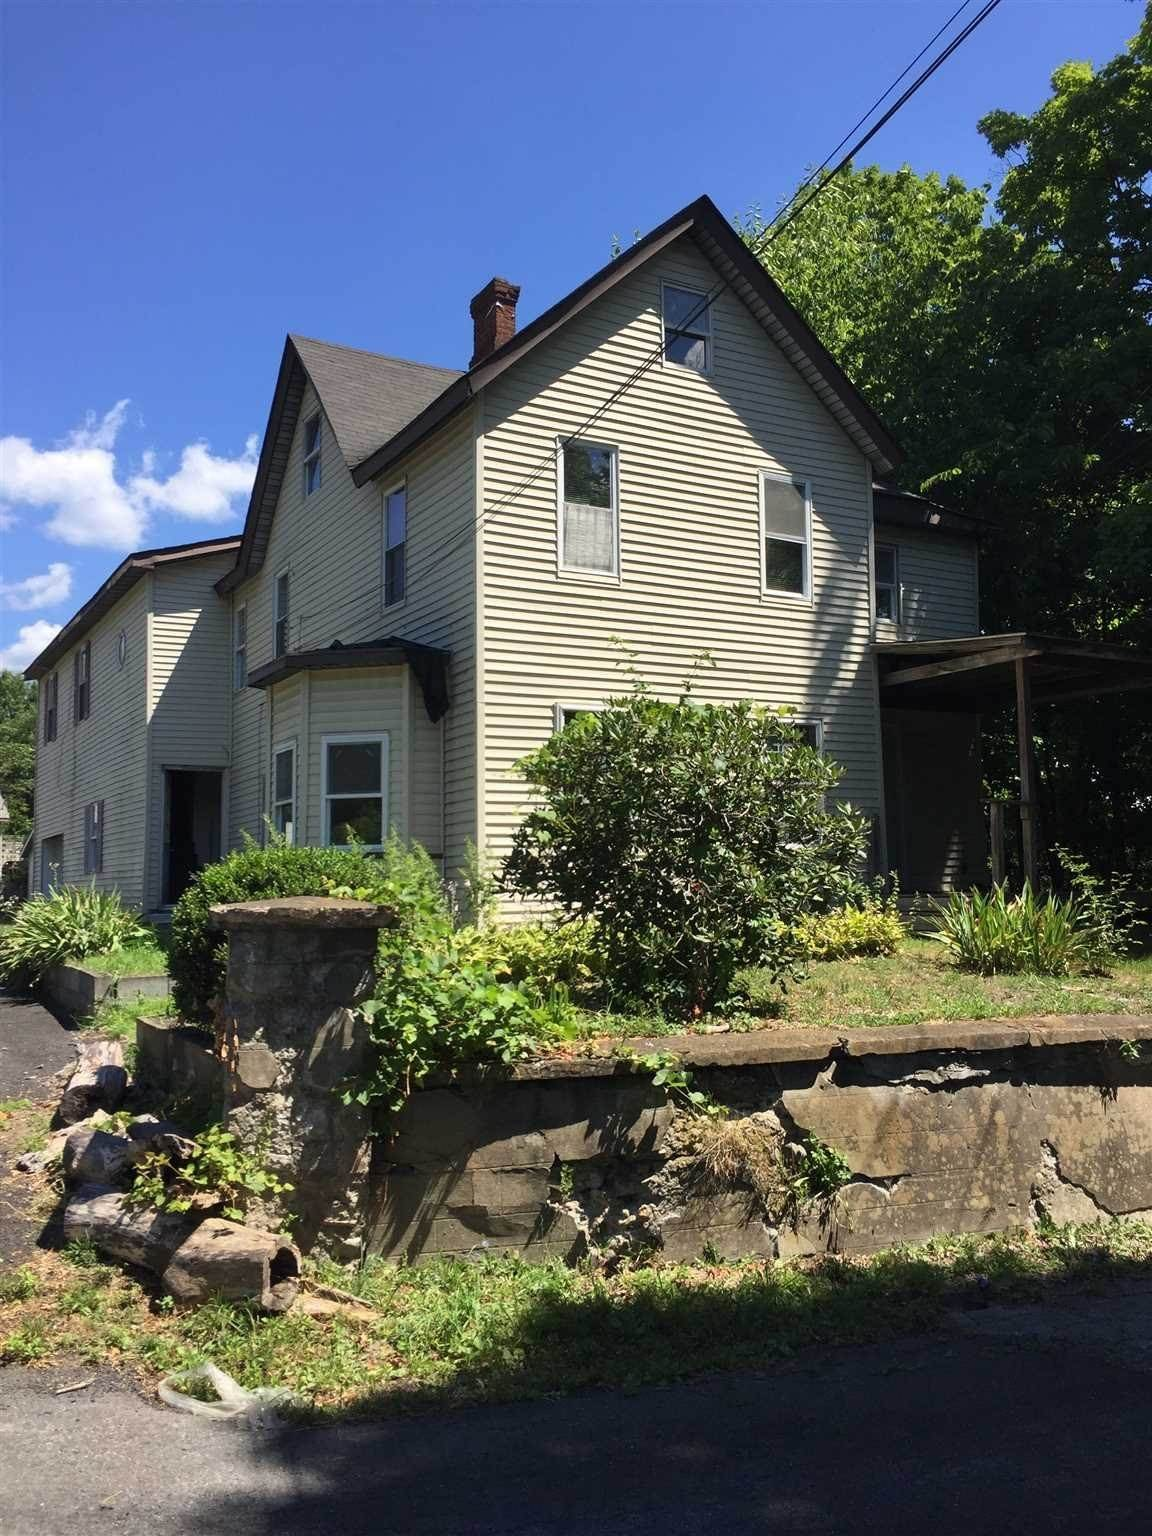 Multi-Family Homes for Sale at 128 CHURCH Street Plattekill, New York 12589 United States